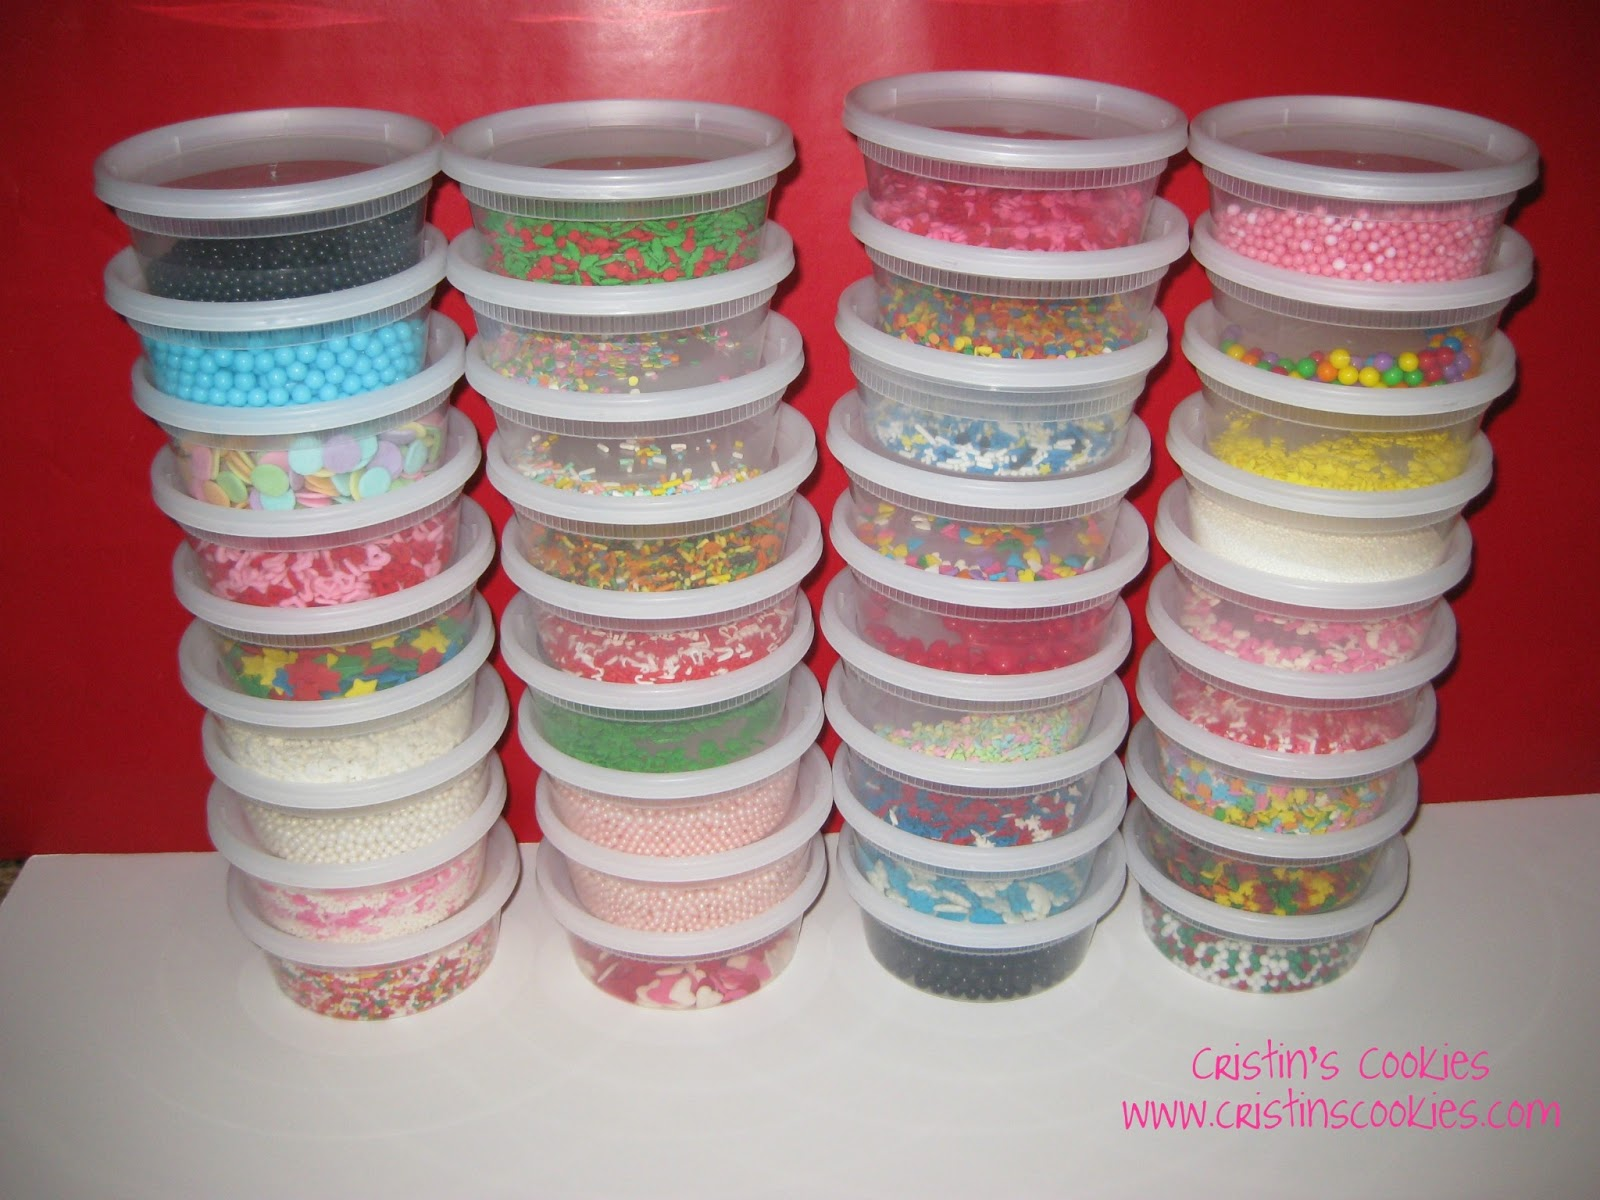 Decorative Cookie Containers Cristin 39s Cookies Cookie Cutters Storage